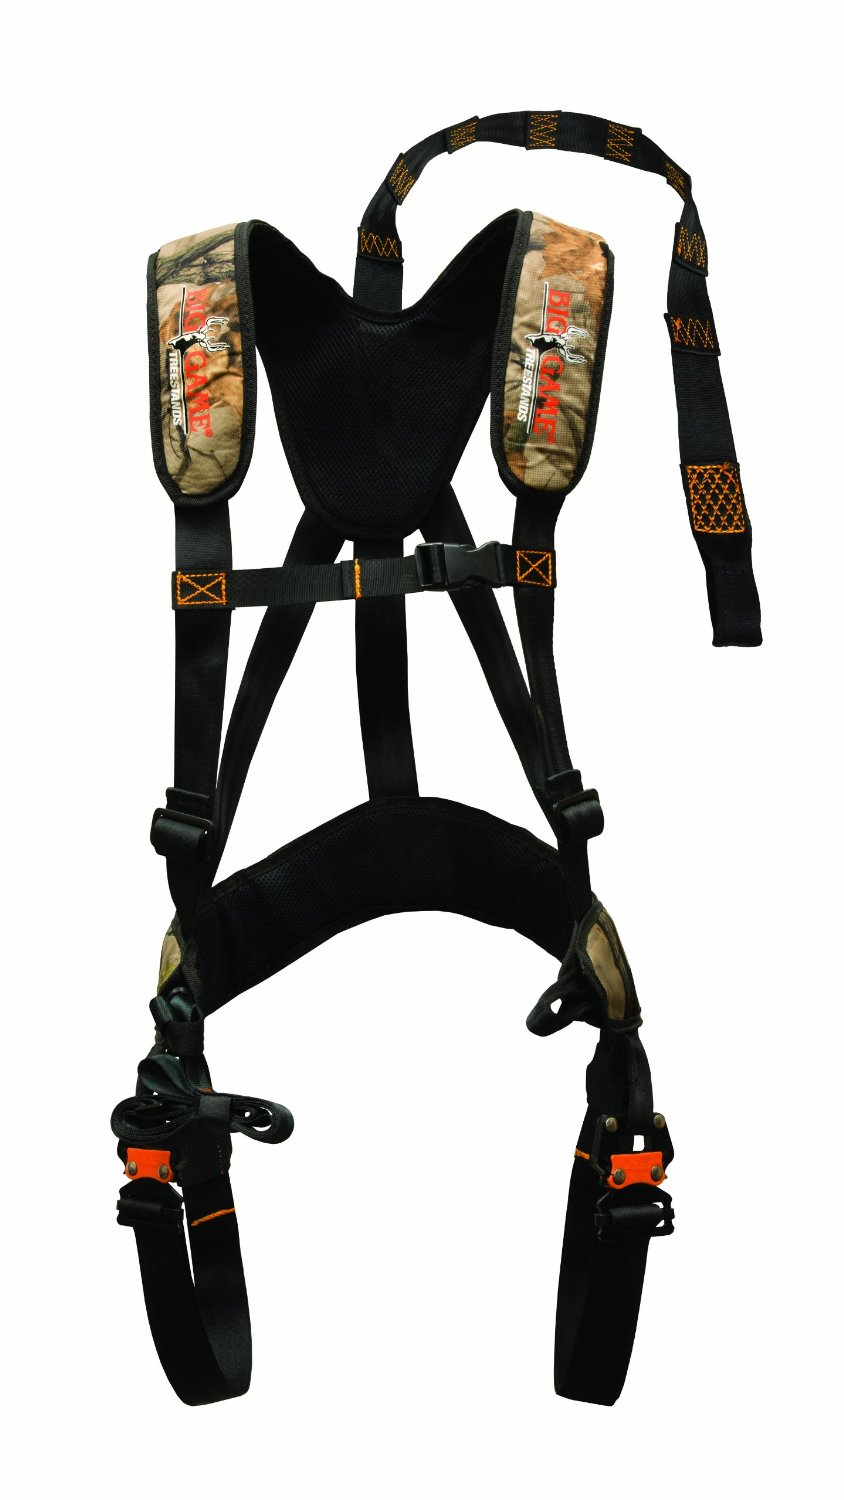 best tree stand harness for the money